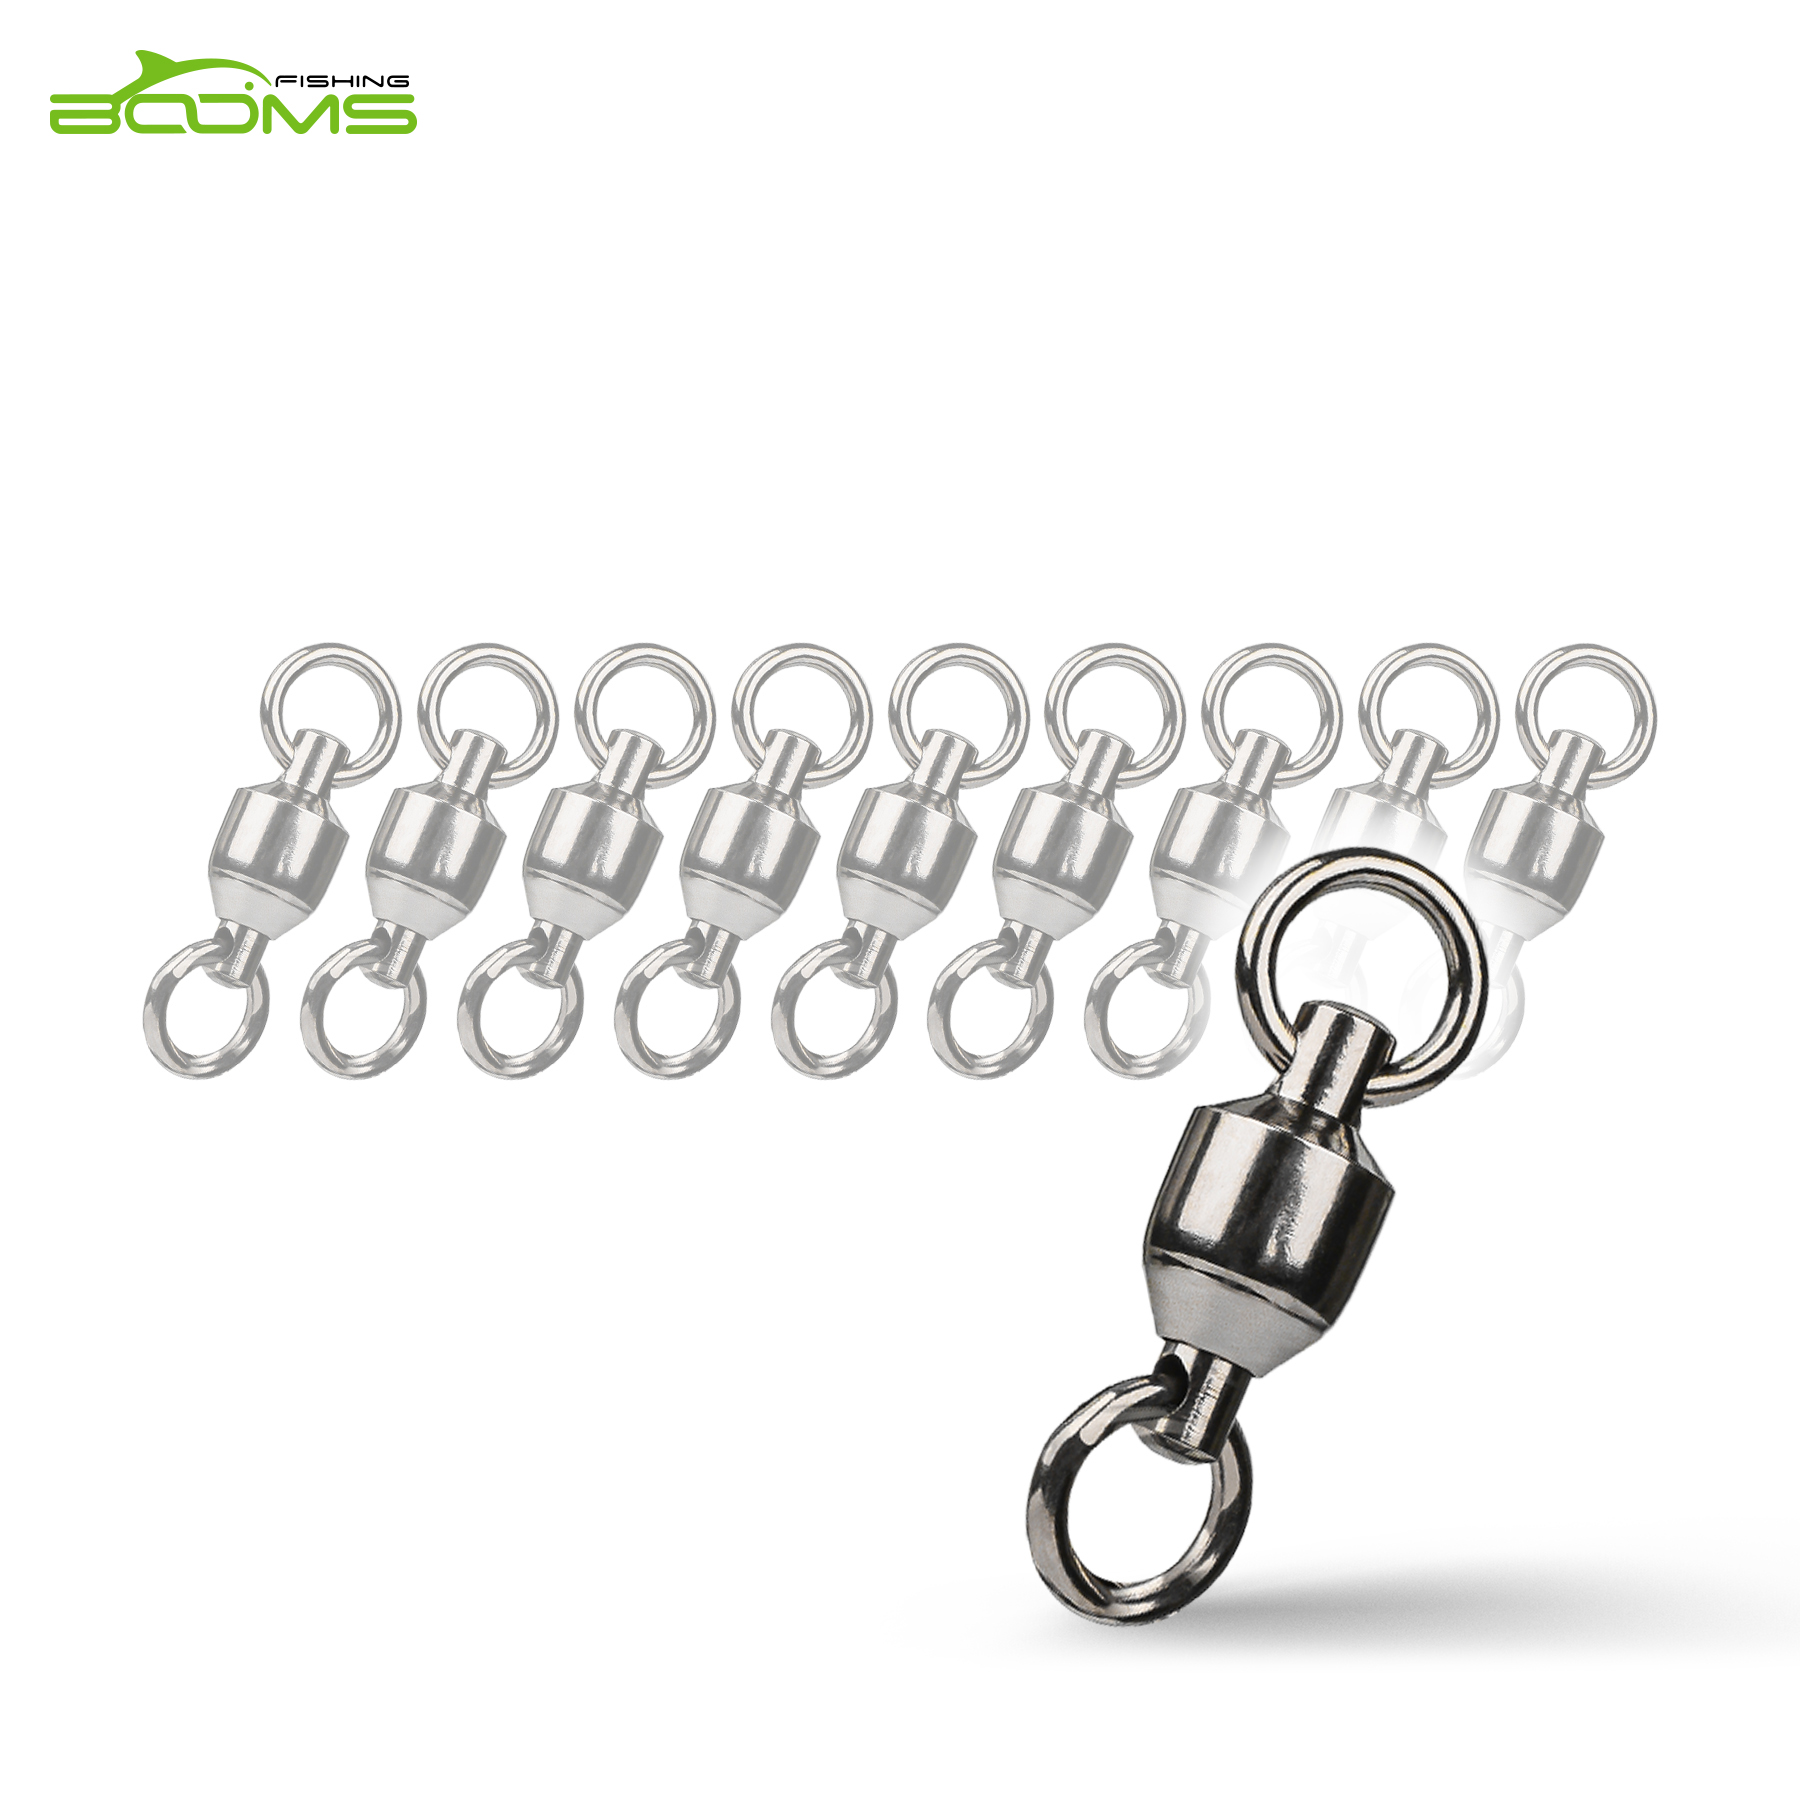 Booms Fishing BB2 Ball Bearing Fishing Rolling Swivel With Double Welded Rings Copper Alloy Connector 10/20Pcs ...